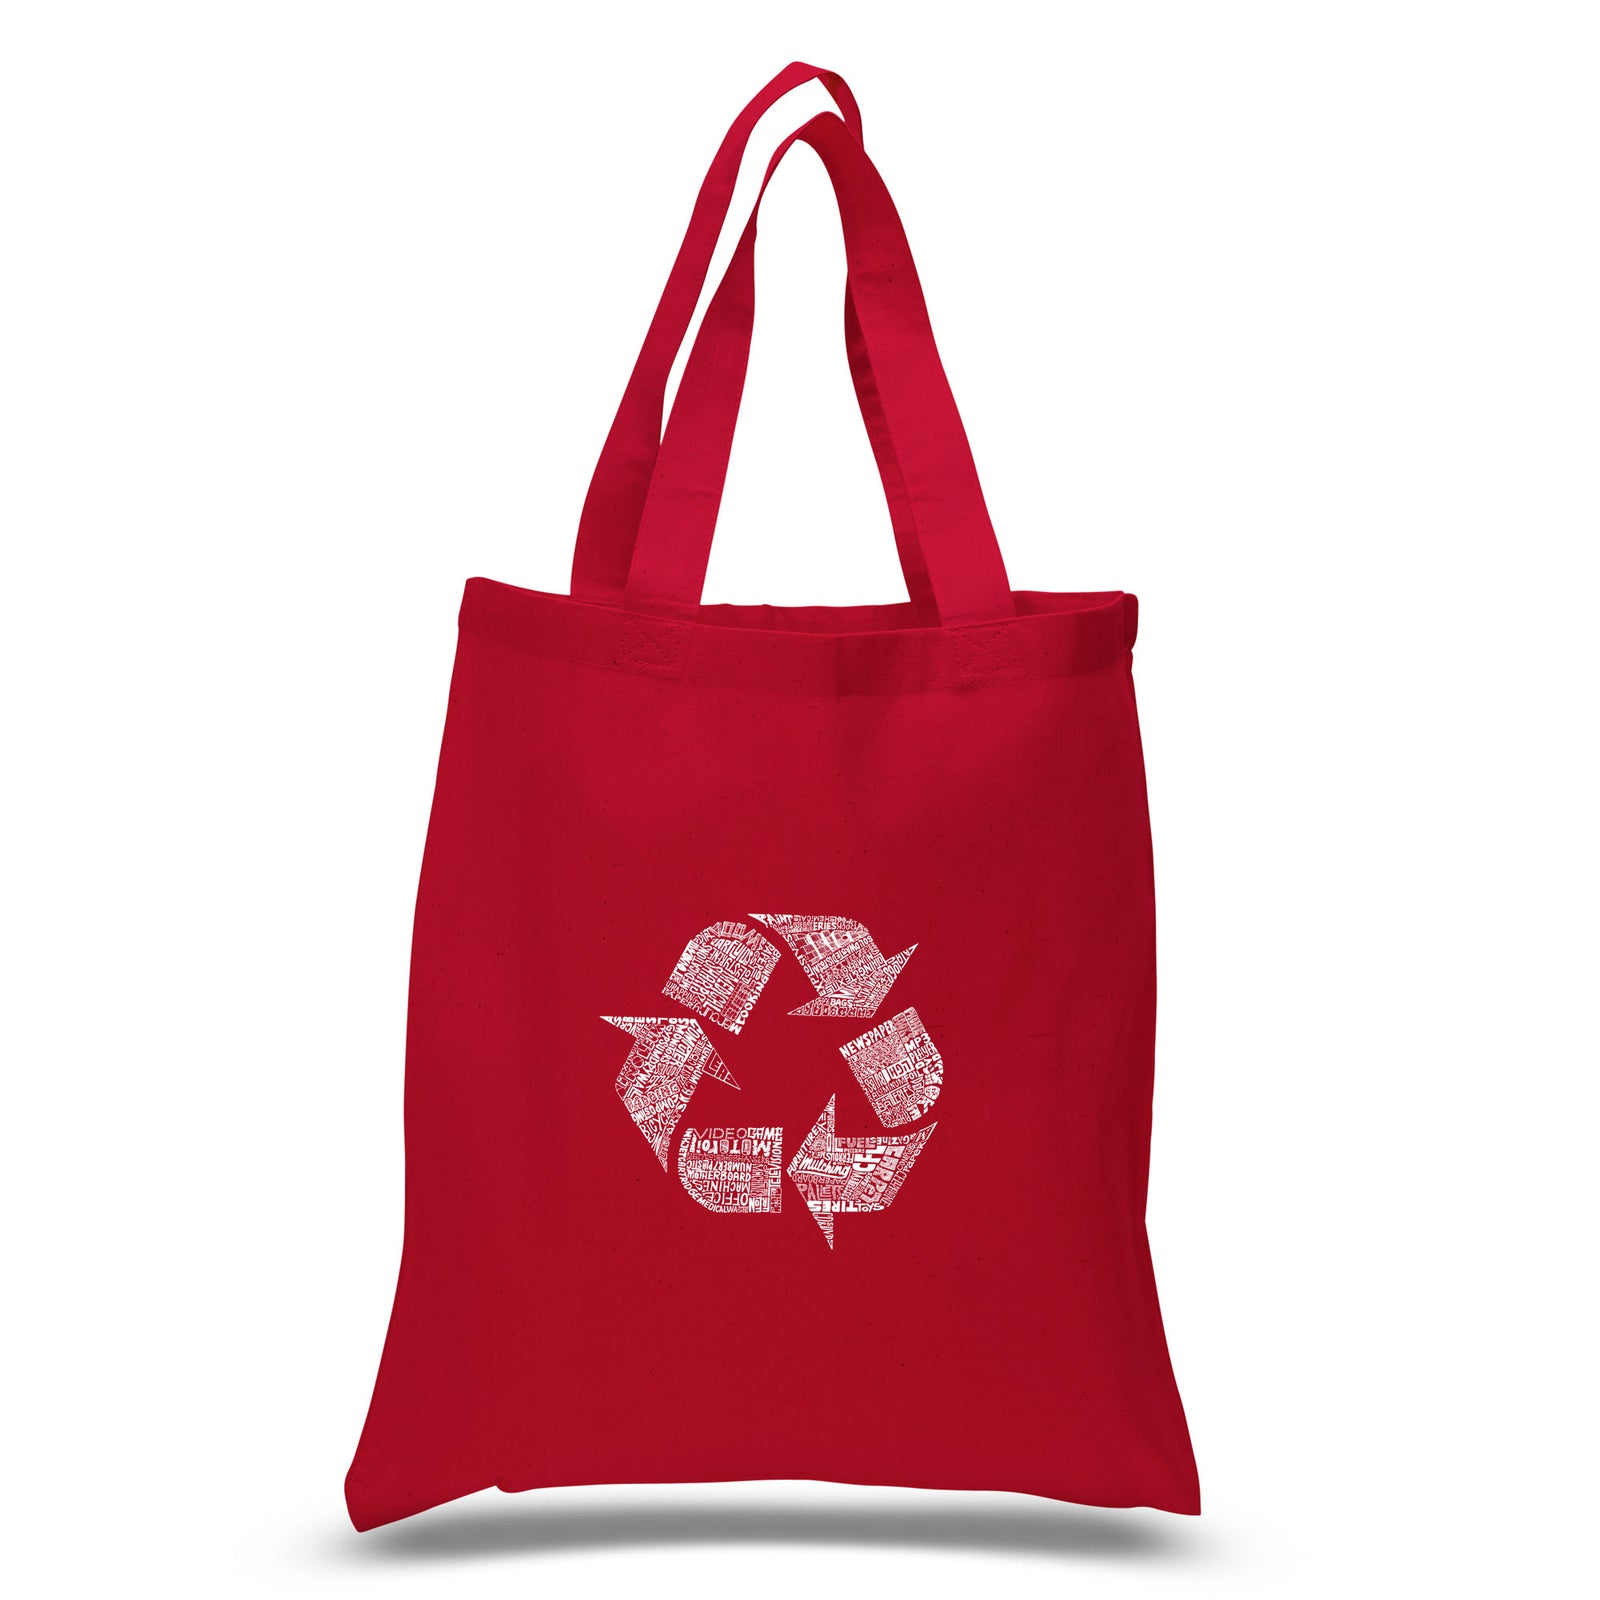 Small Tote Bag - 86 RECYCLABLE PRODUCTS